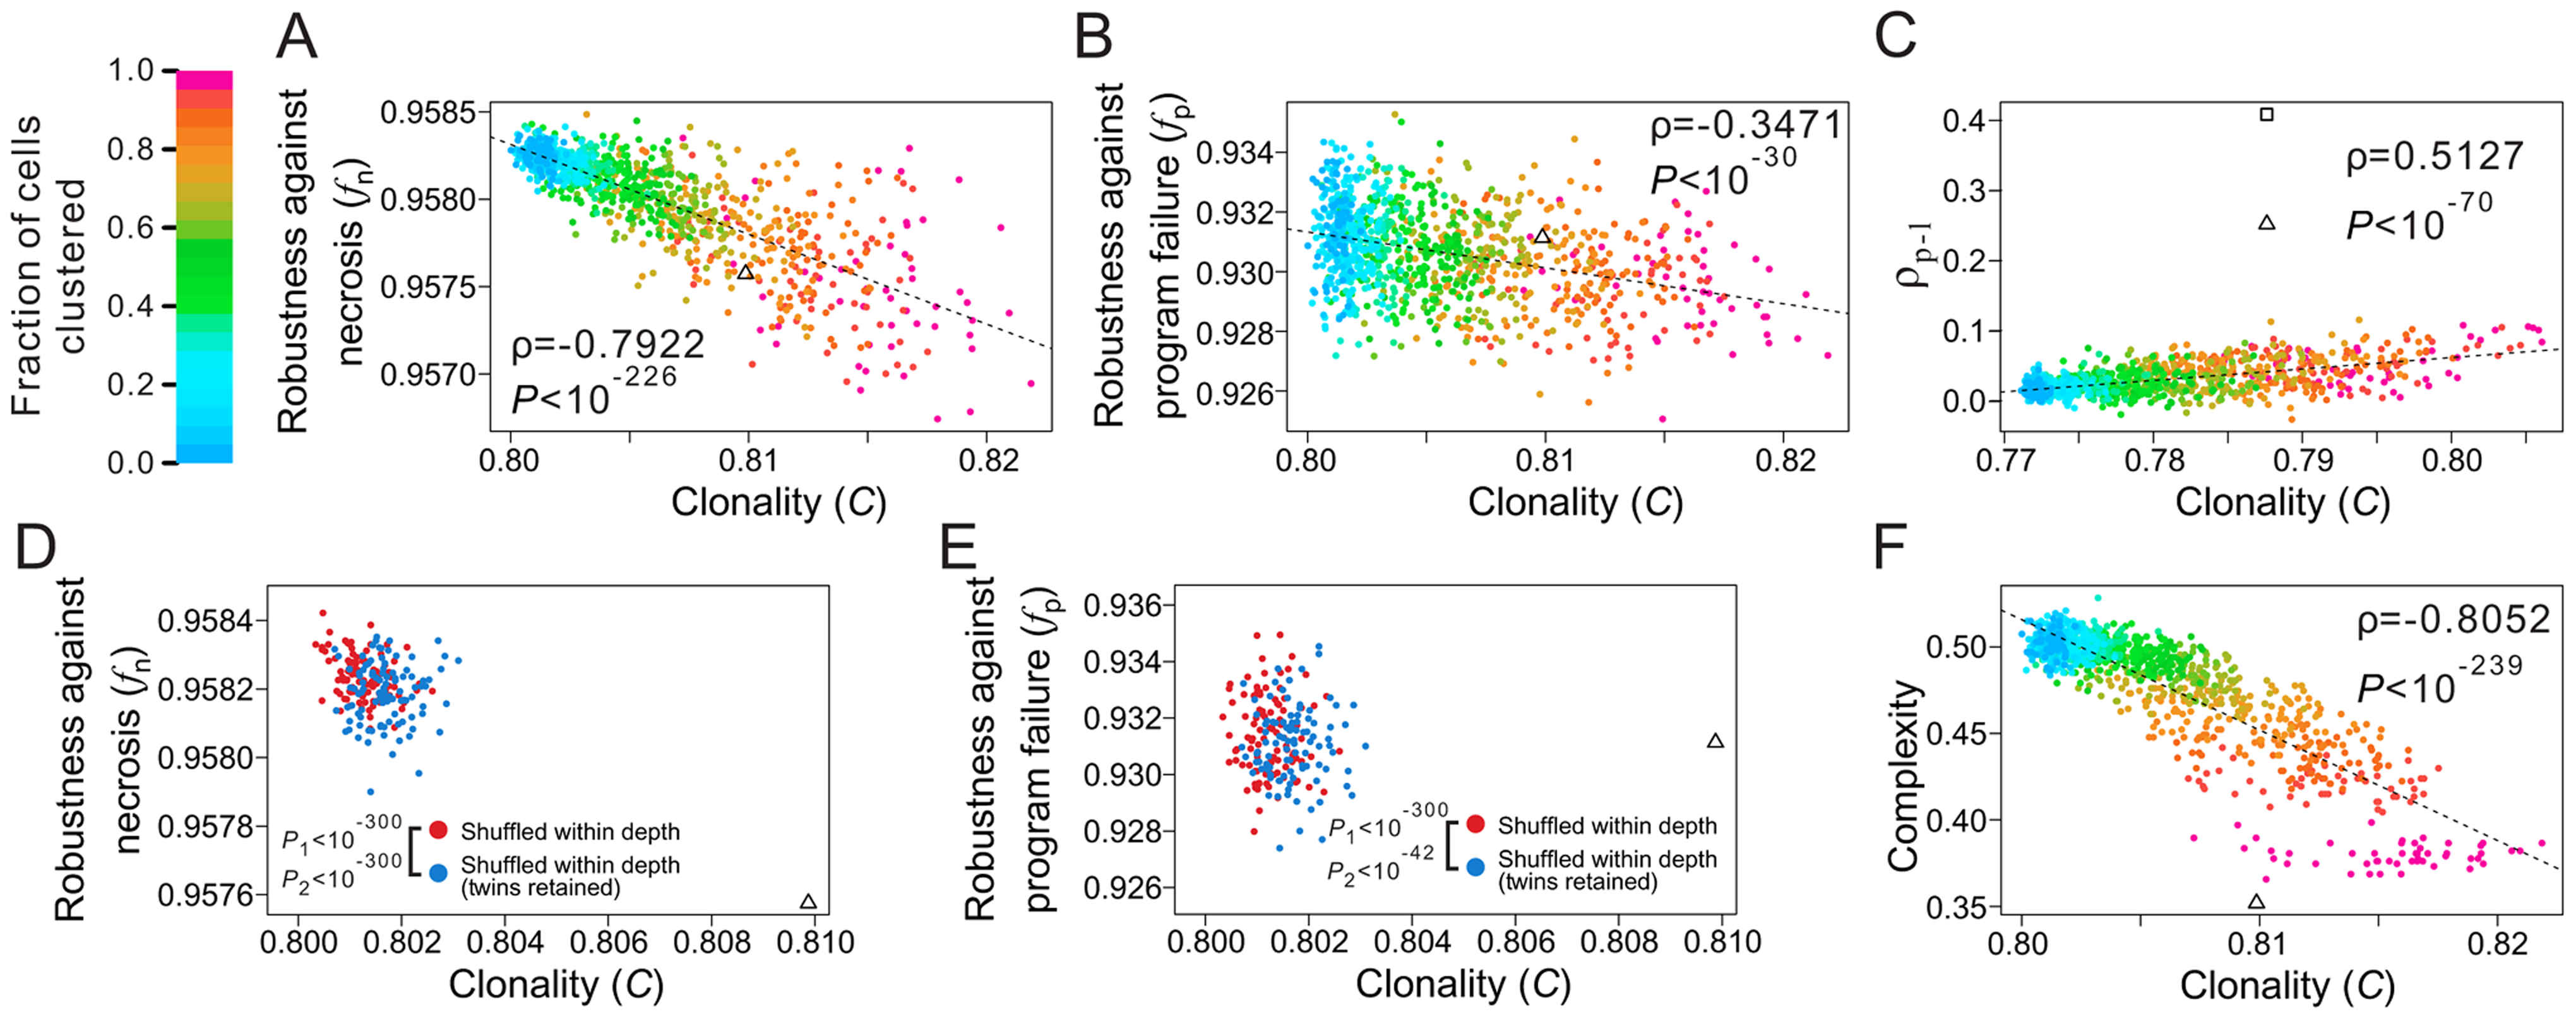 Non-clonality of cell types contributes to the robustness of the <i>C. elegans</i> lineage.